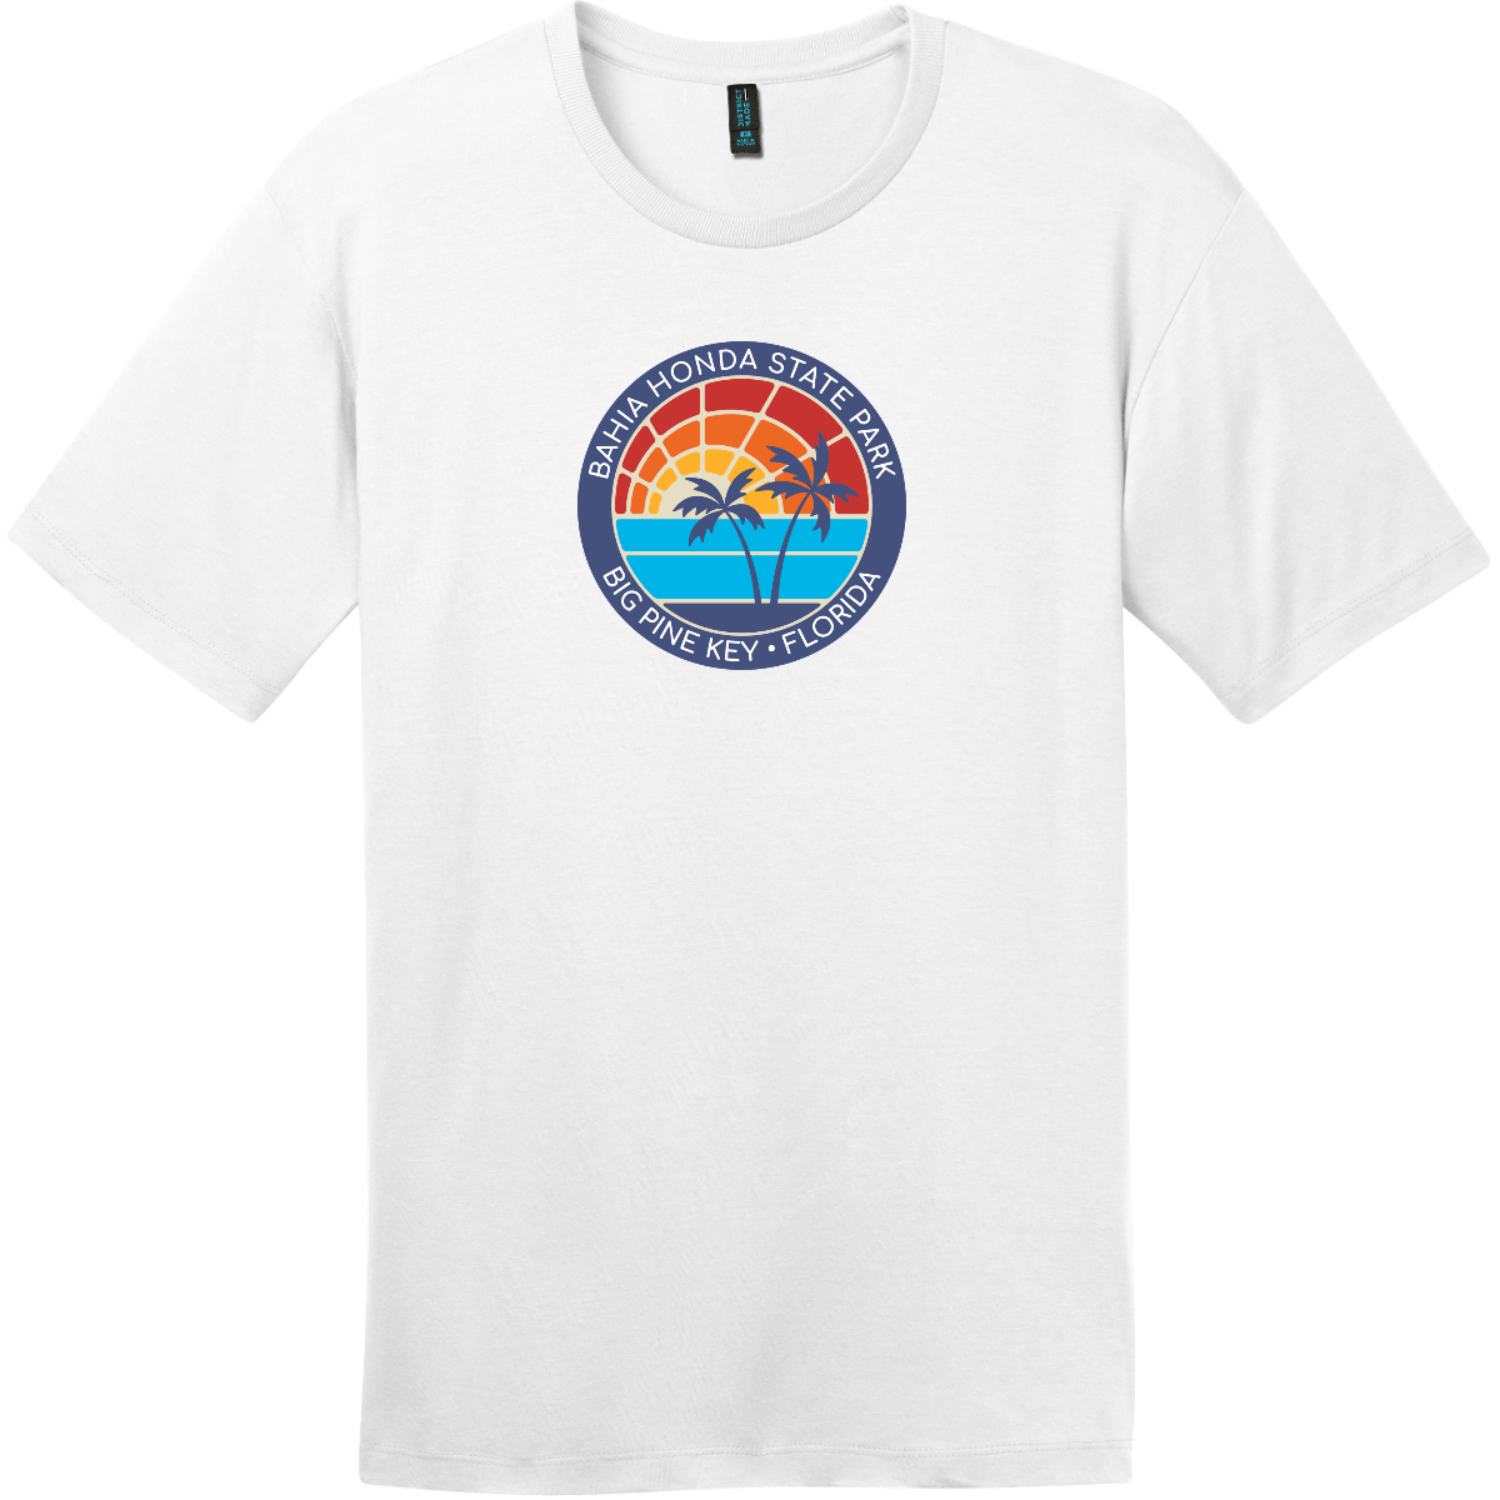 Bahia Honda State Park T-Shirt Bright White District Perfect Weight Tee DT104